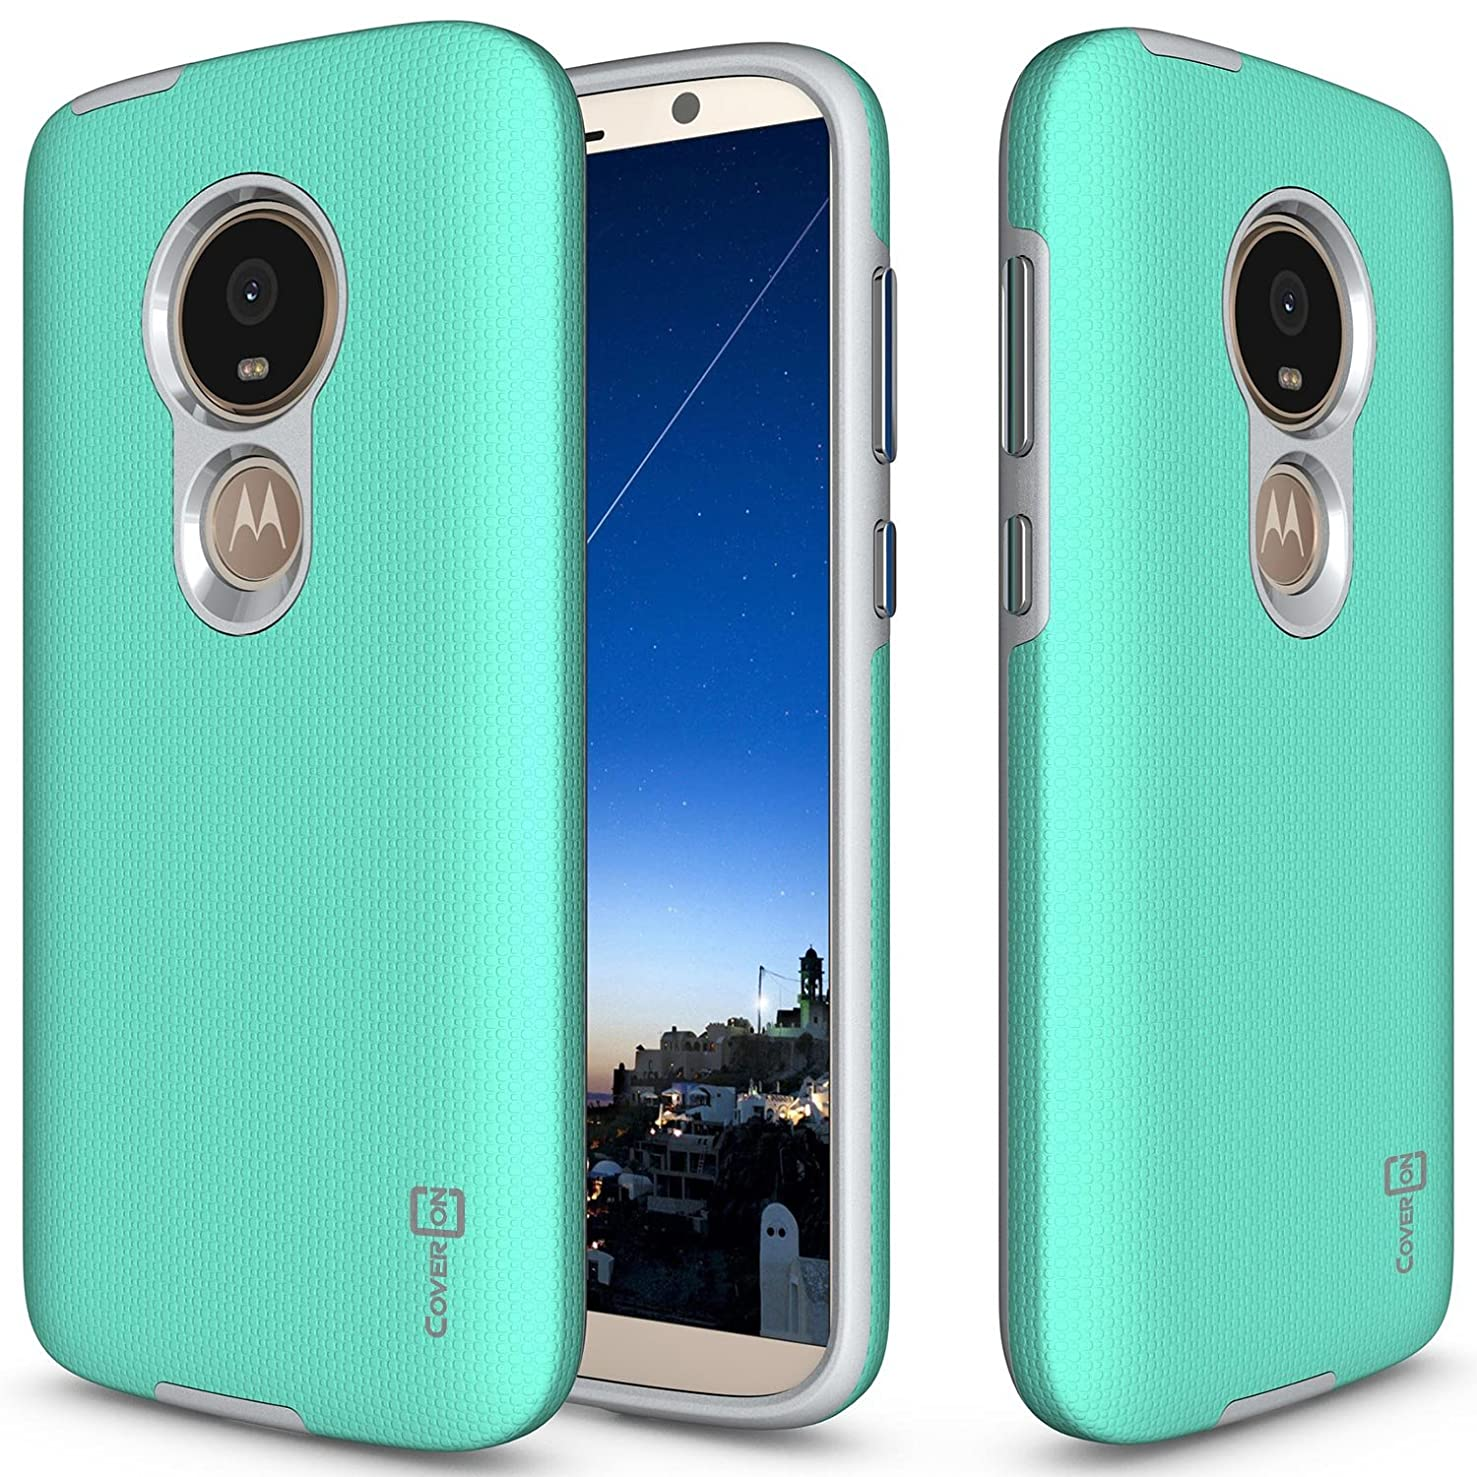 Motorola Moto E5 Play Phone Case, Motorola Moto E5 Cruise Phone Case, CoverON Rugged Series Protective Heavy Duty Hard Phone Cover with Metalized Button Covers - Mint Teal